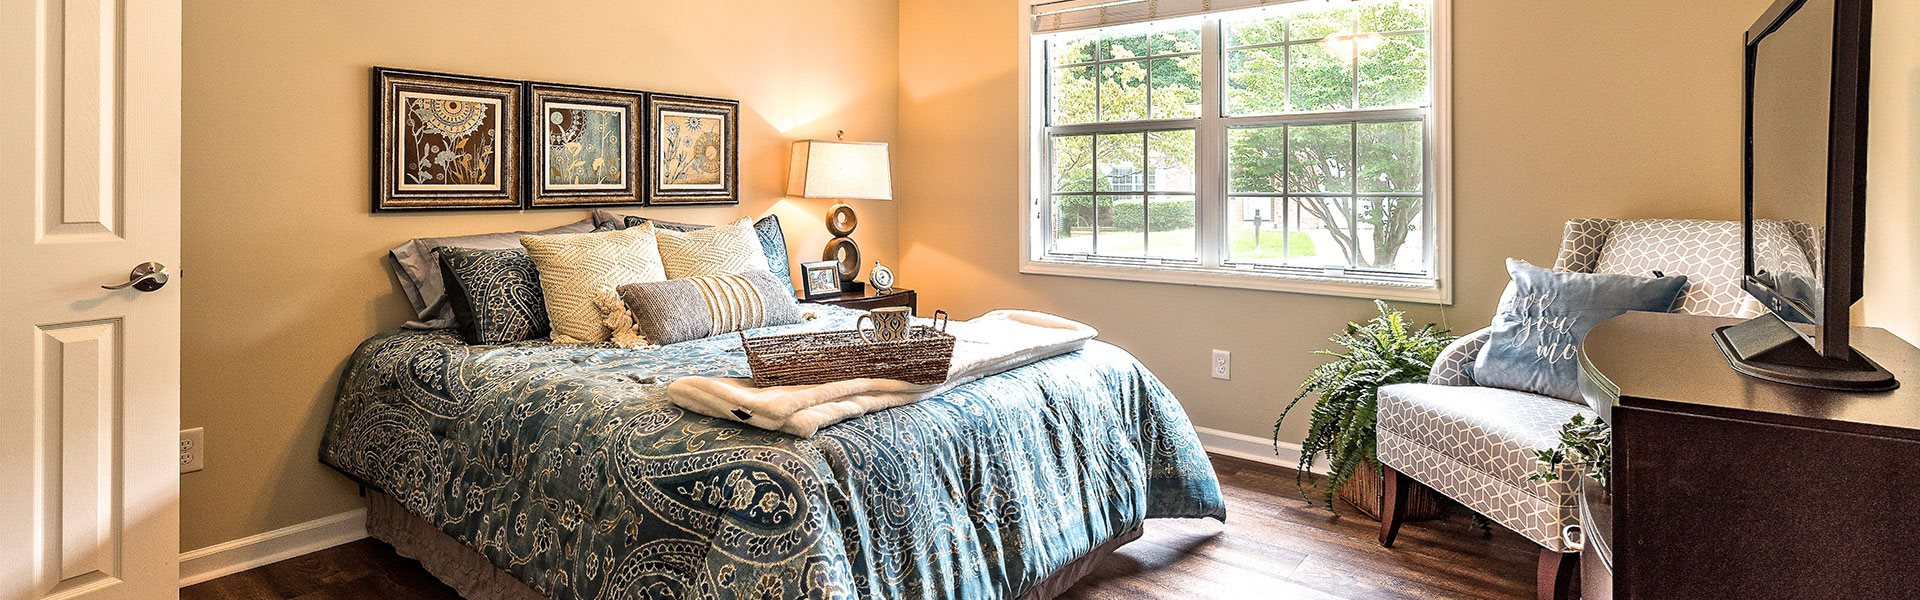 Spacious Bedroom With Comfortable Bed at Pacifica Senior Living Heritage Hills, Hendersonville, NC, 28791